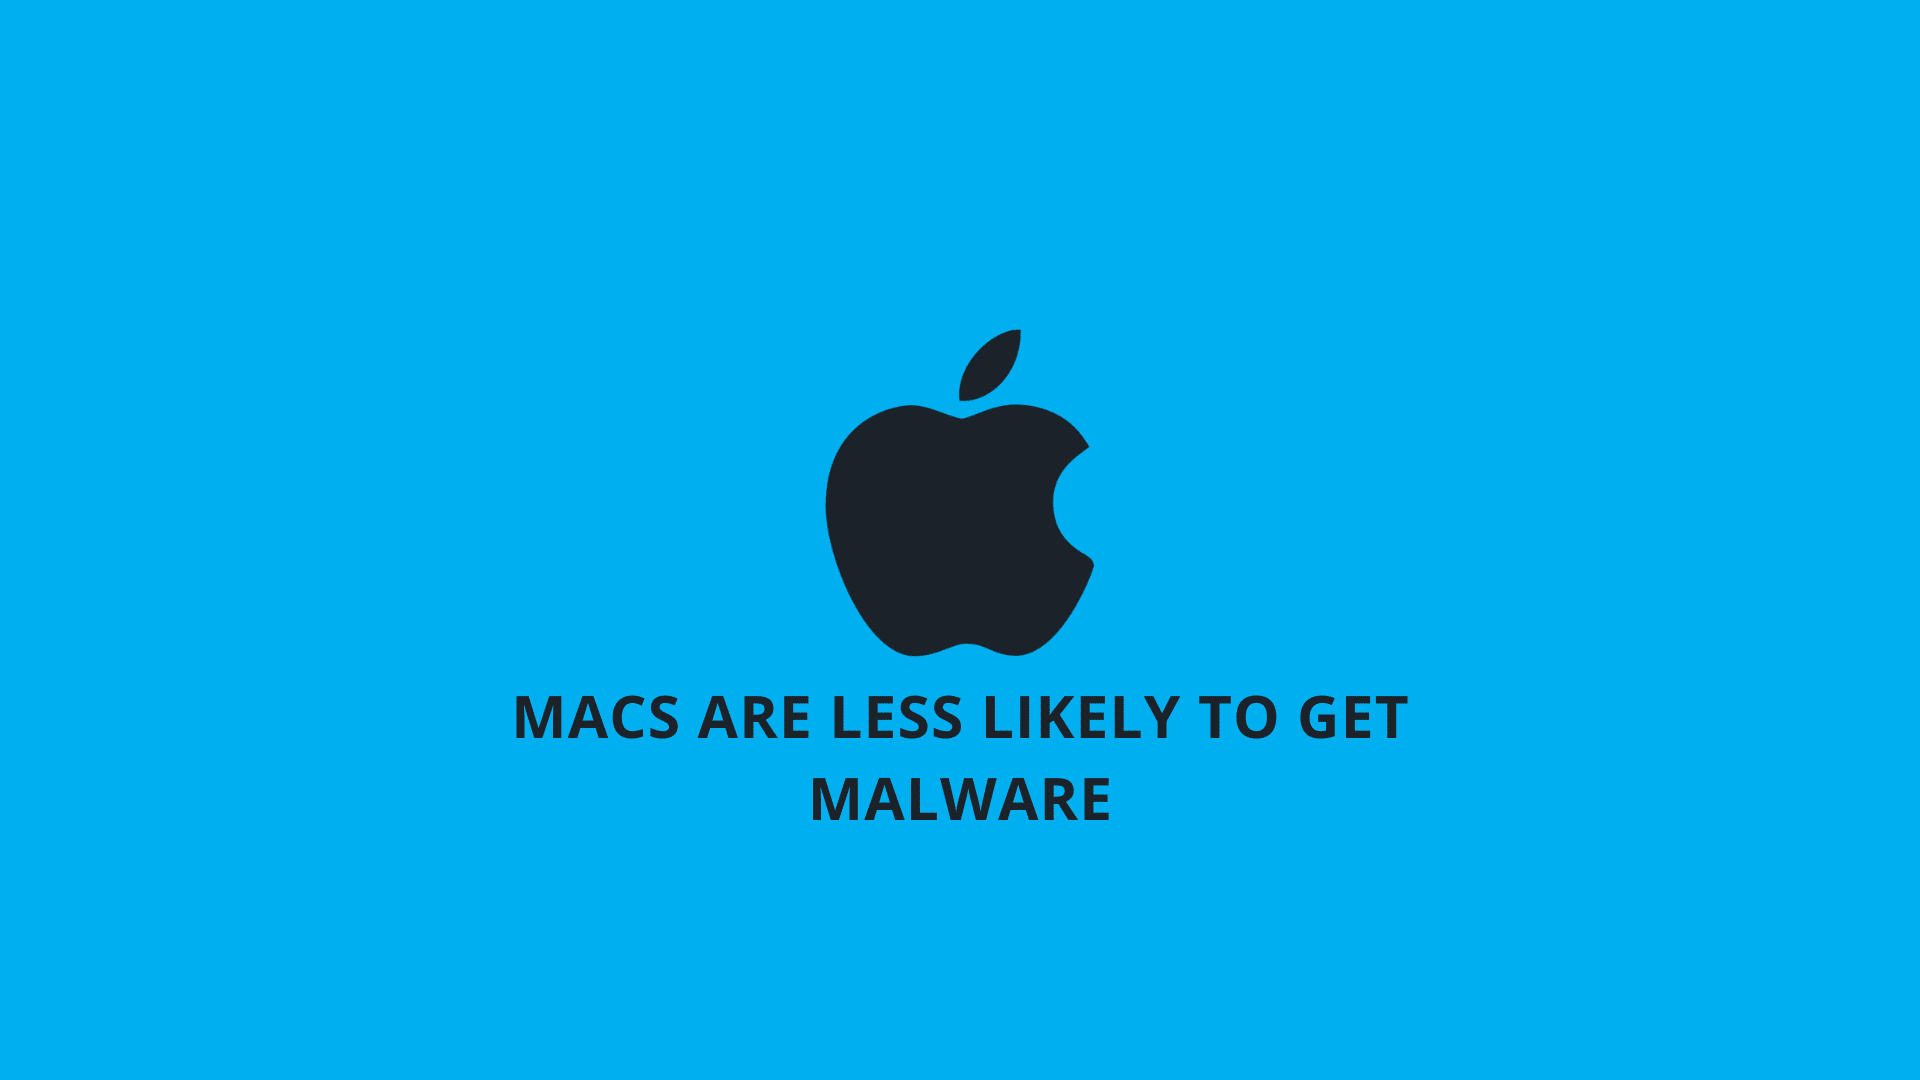 Macs Are Less Likely to Get Malware